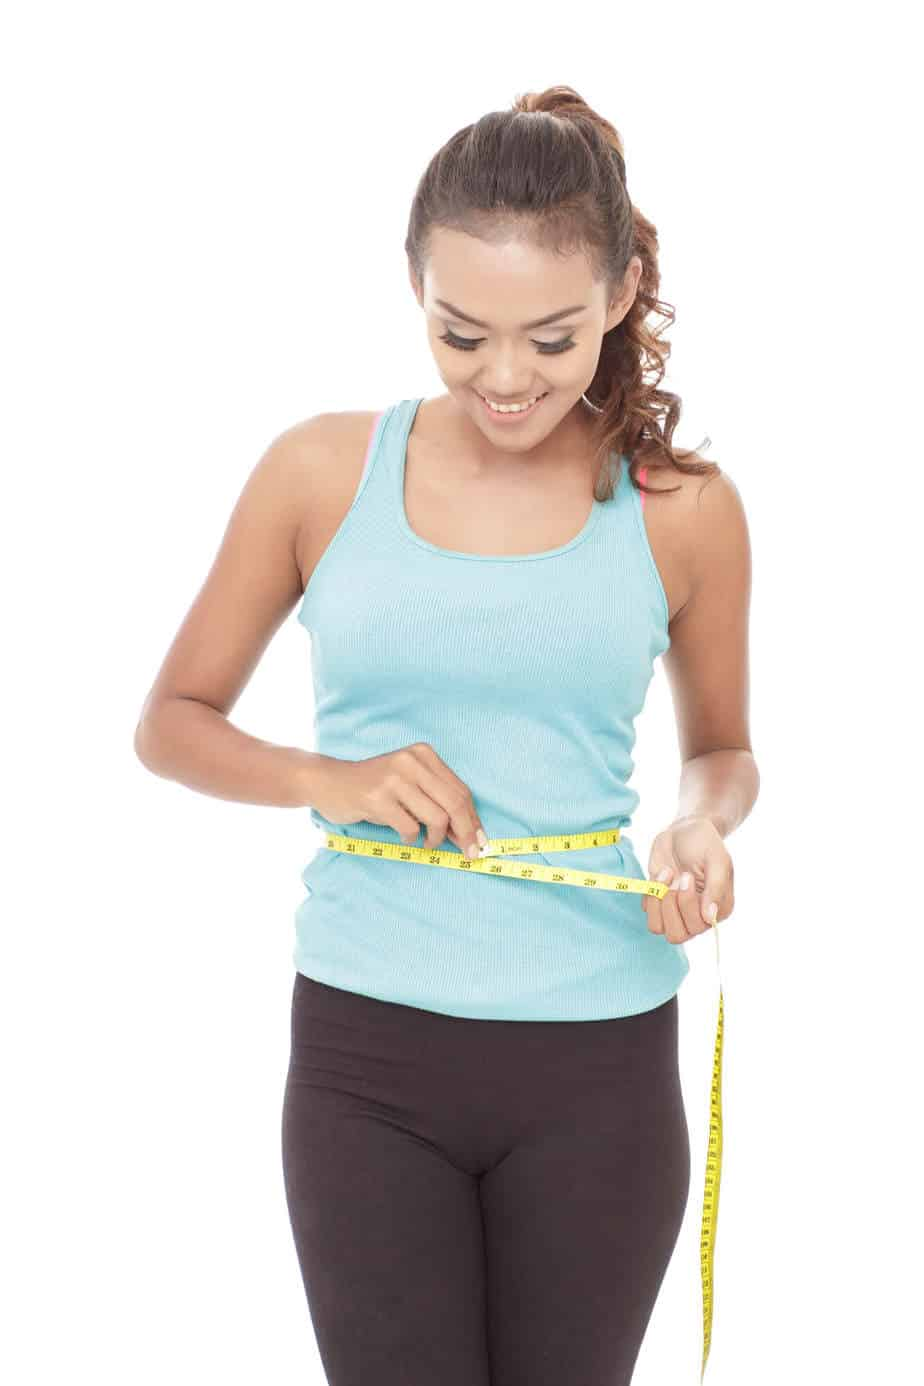 Woman measuring her waist.  If you want to lose weight on intermittent fasting, try different measures of success than just the scale.